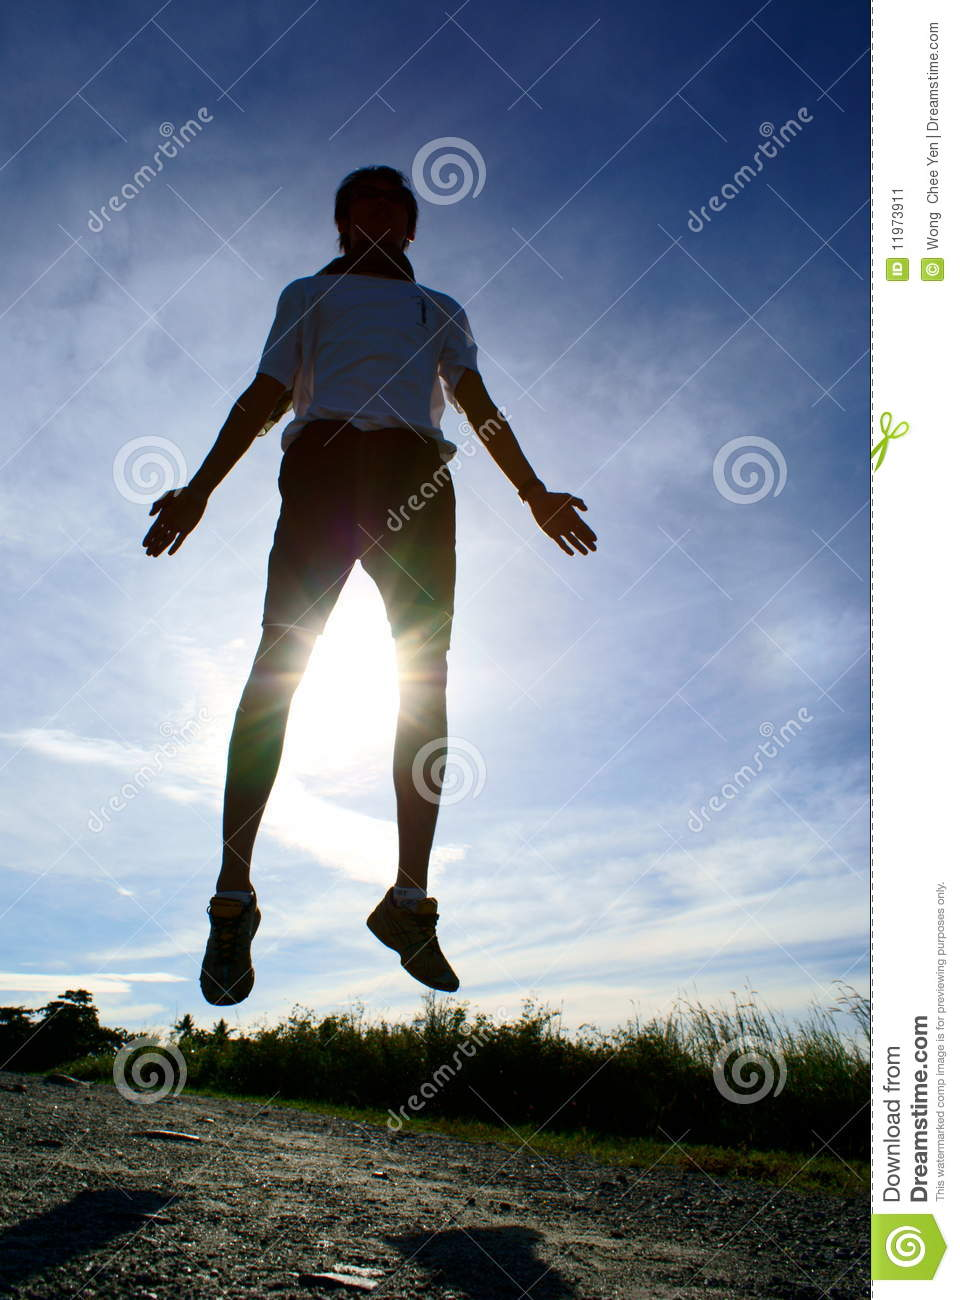 Floating Midair Silhouette Stock Image Of World